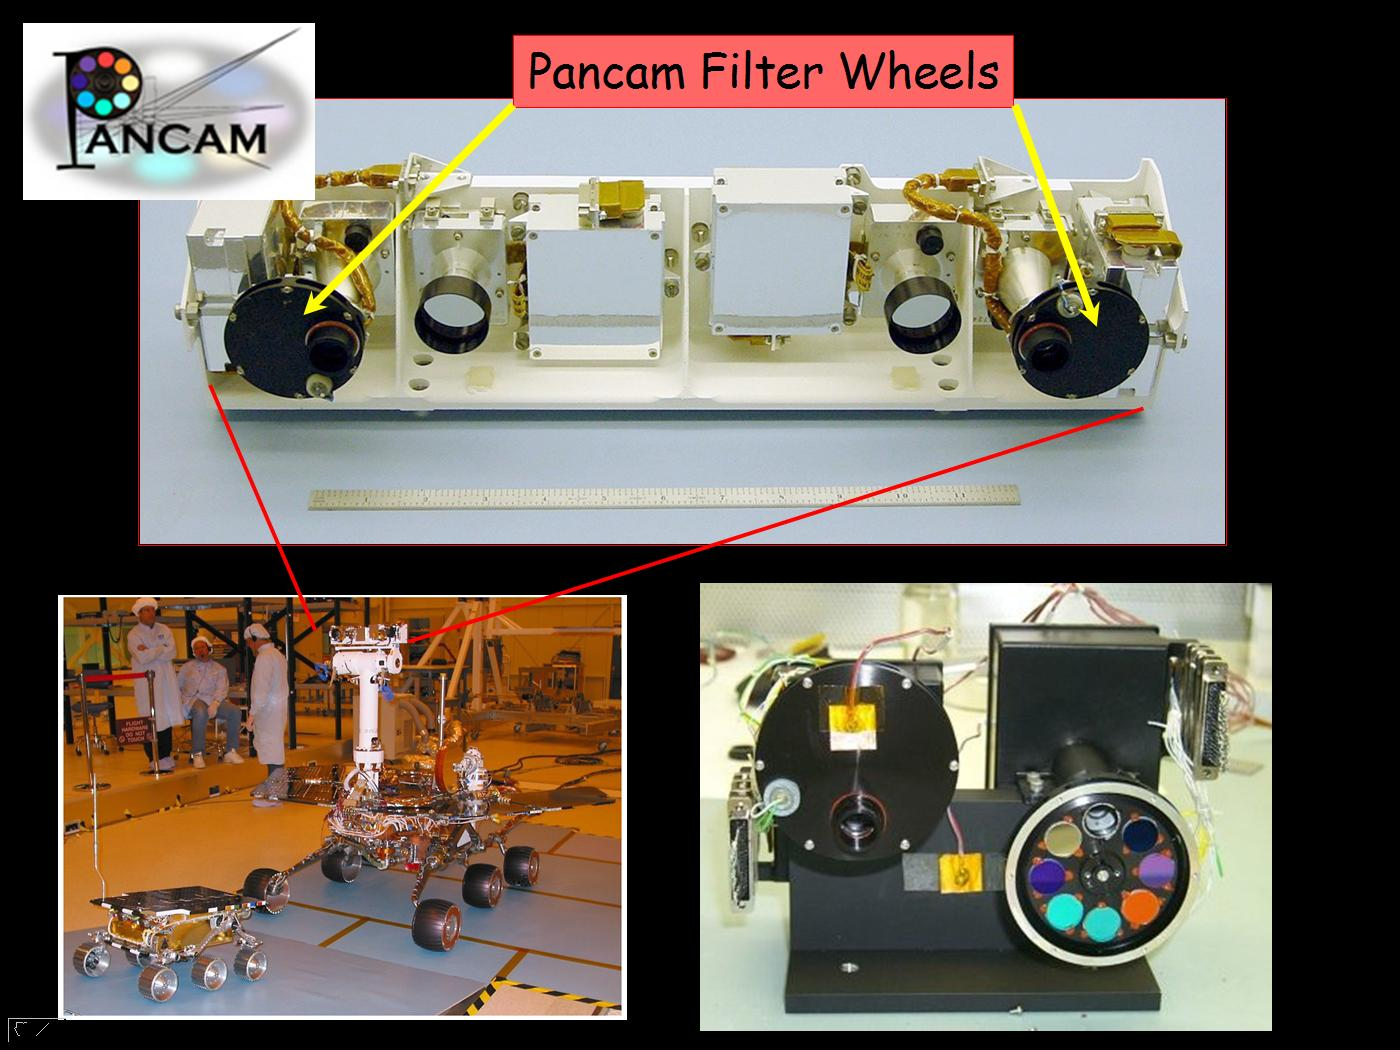 Image of The Panoramic Camera (Pancam) instrument